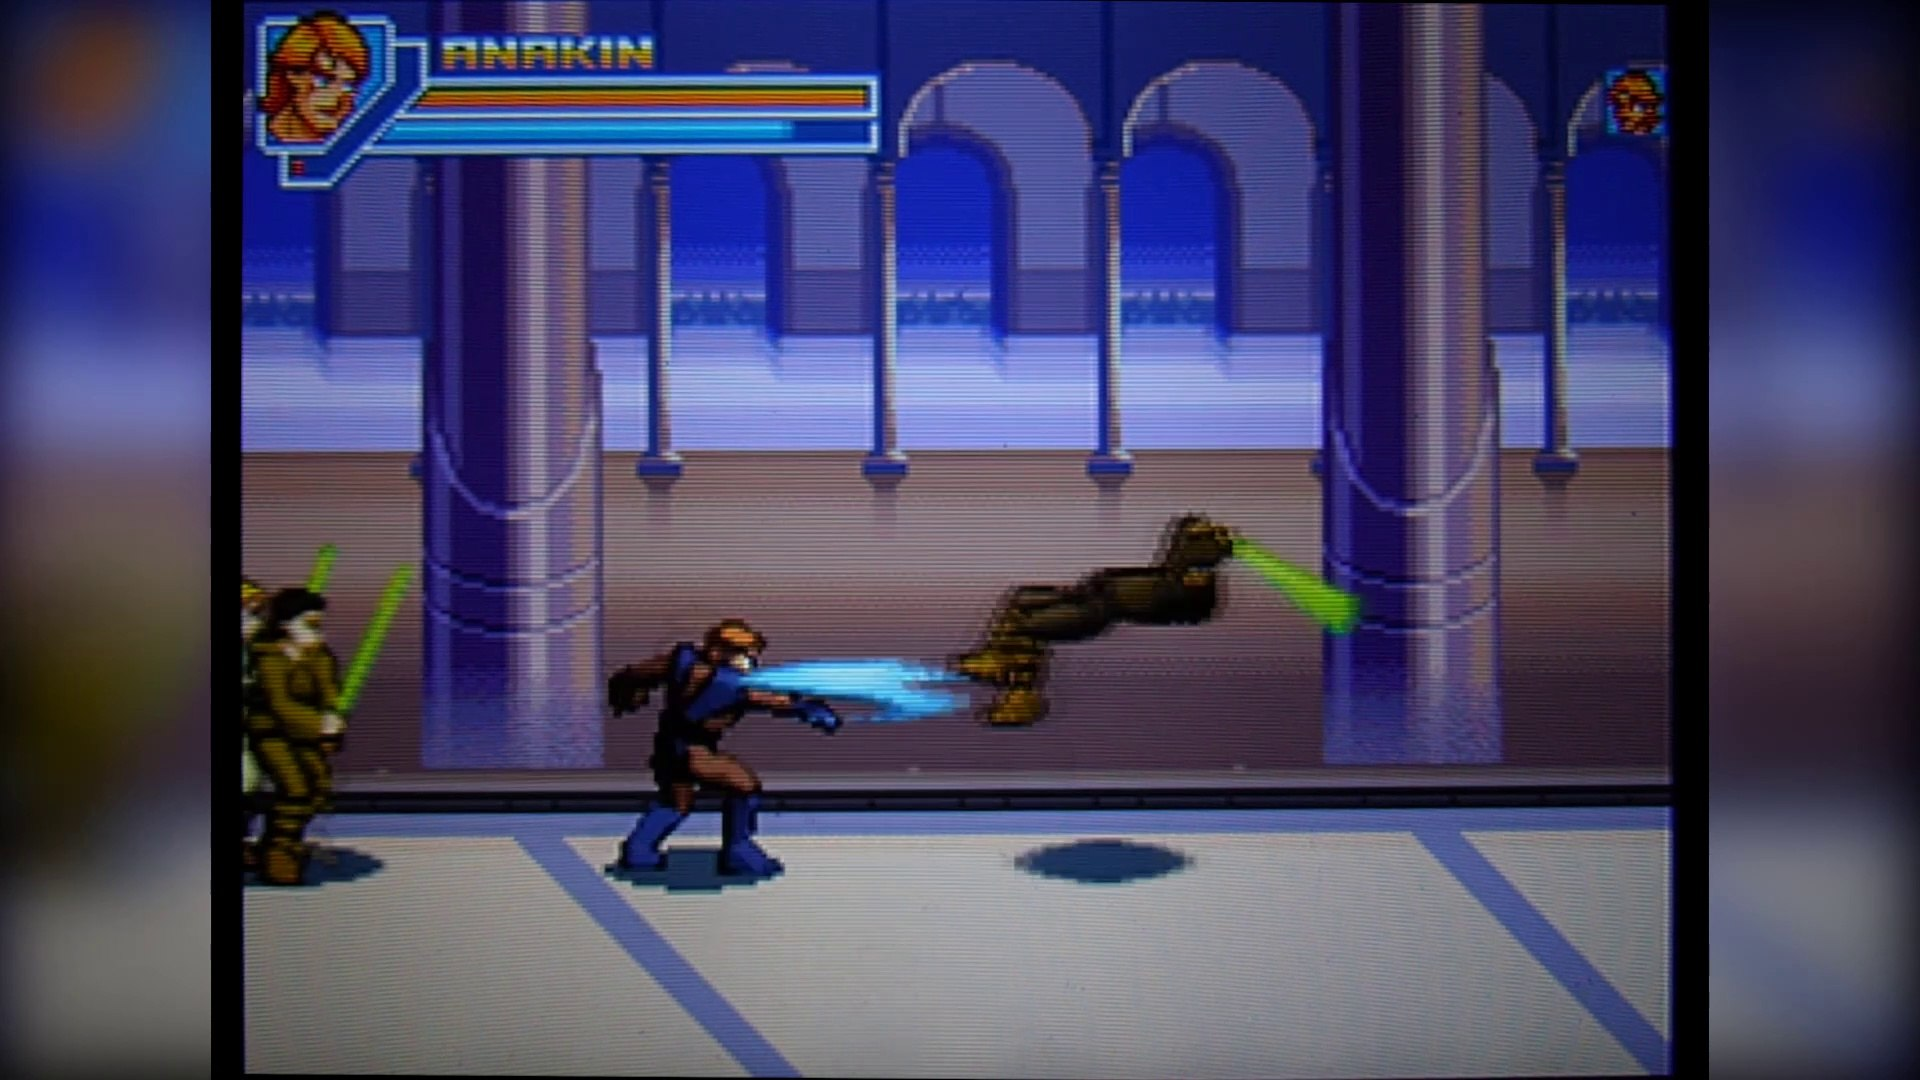 Star Wars Episode Iii Revenge Of The Sith Nintendo Ds Review 16 Bit Game Review Video Dailymotion